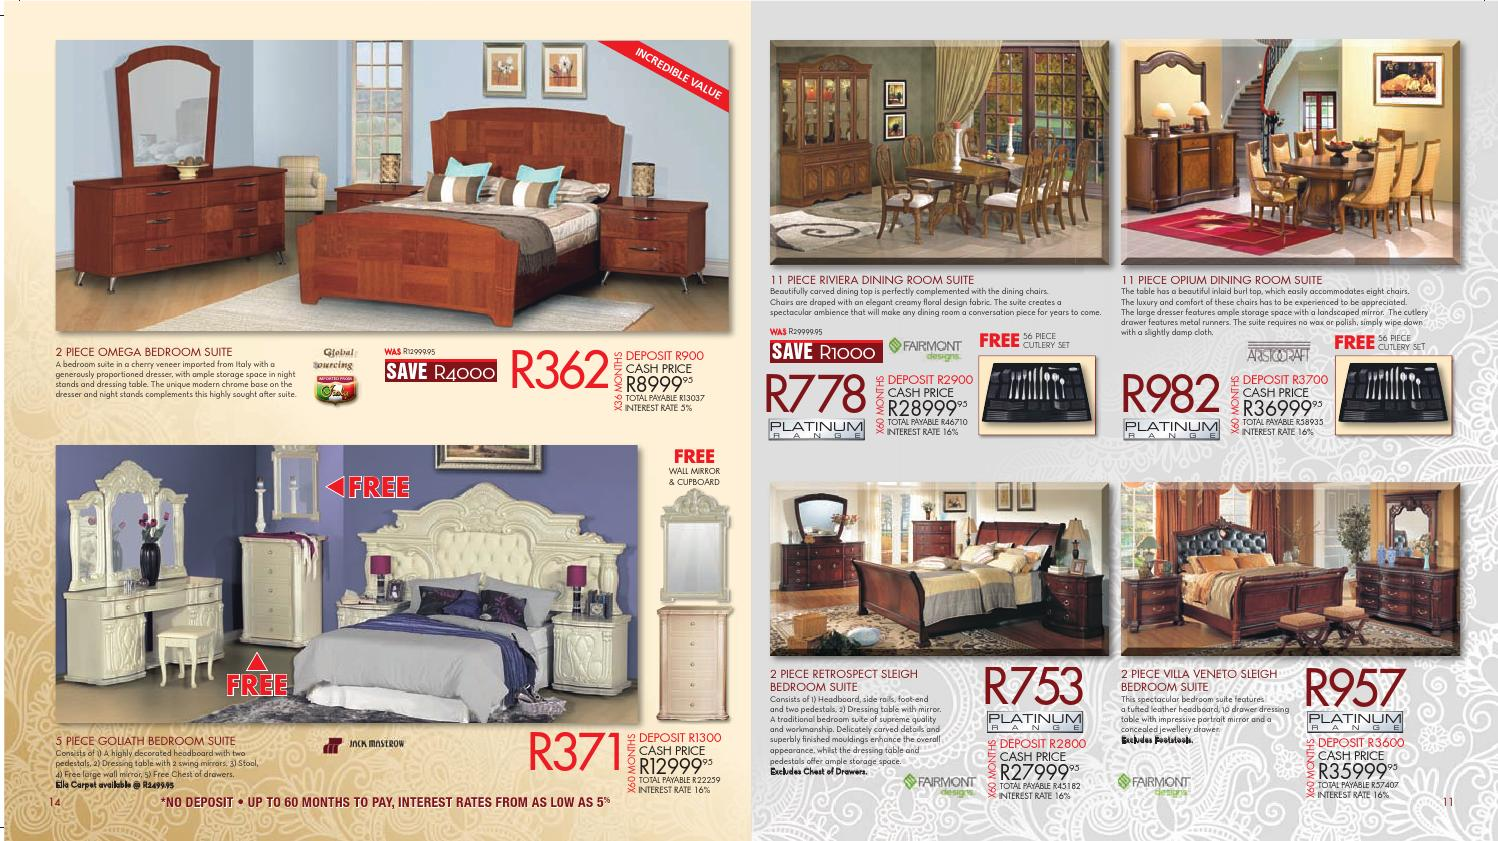 Dining room suites at bradlows Home furniture catalogue south africa